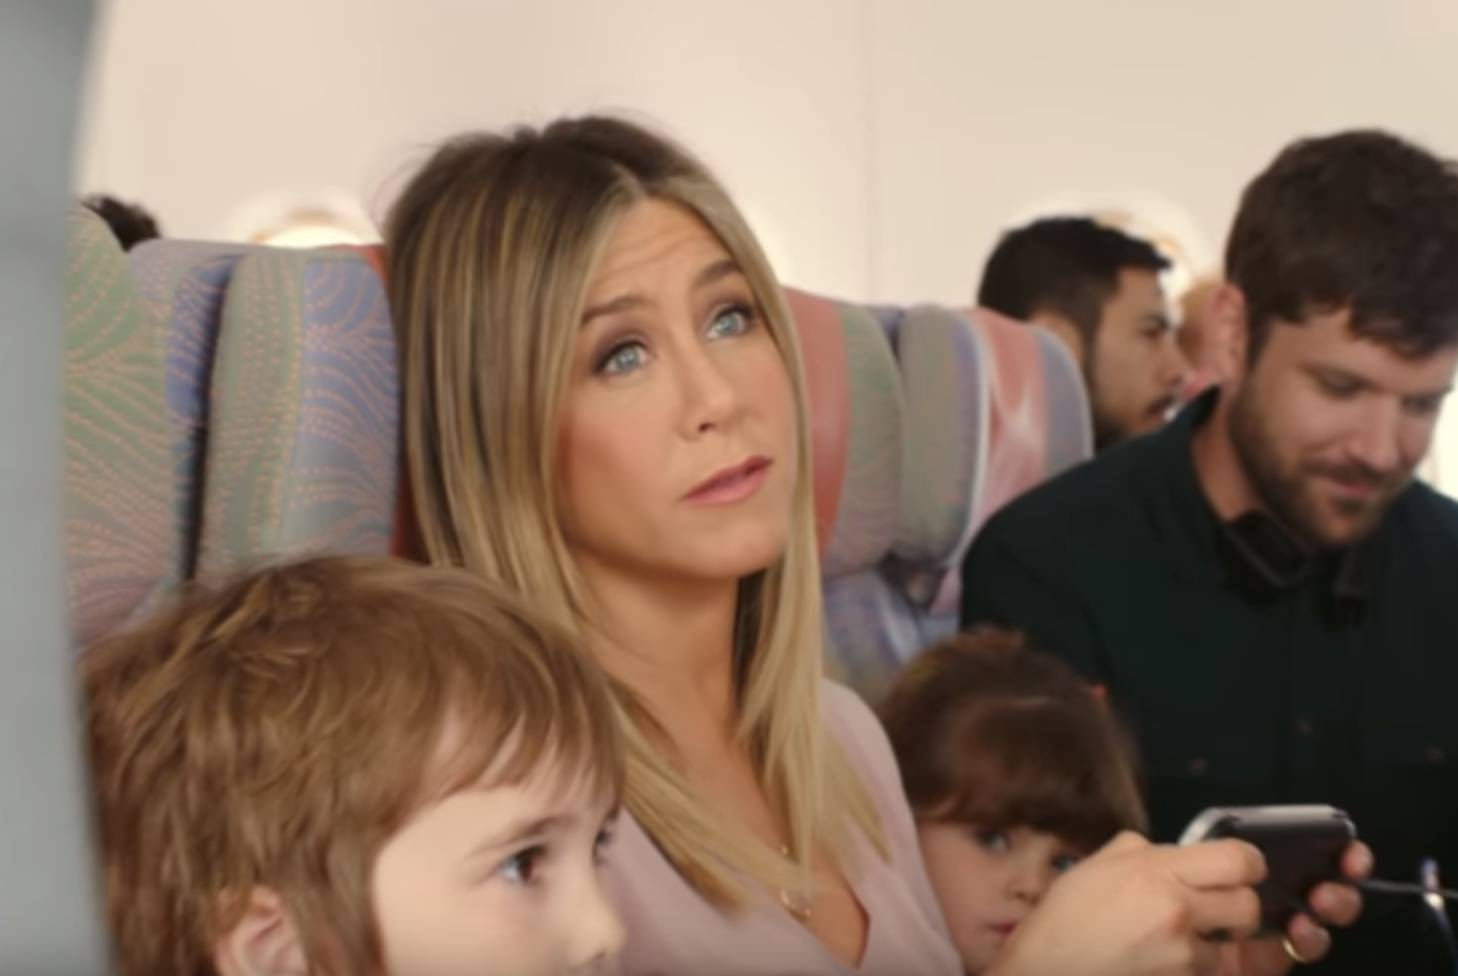 Watch Jennifer Aniston Takes A Turn In Economy Class In New